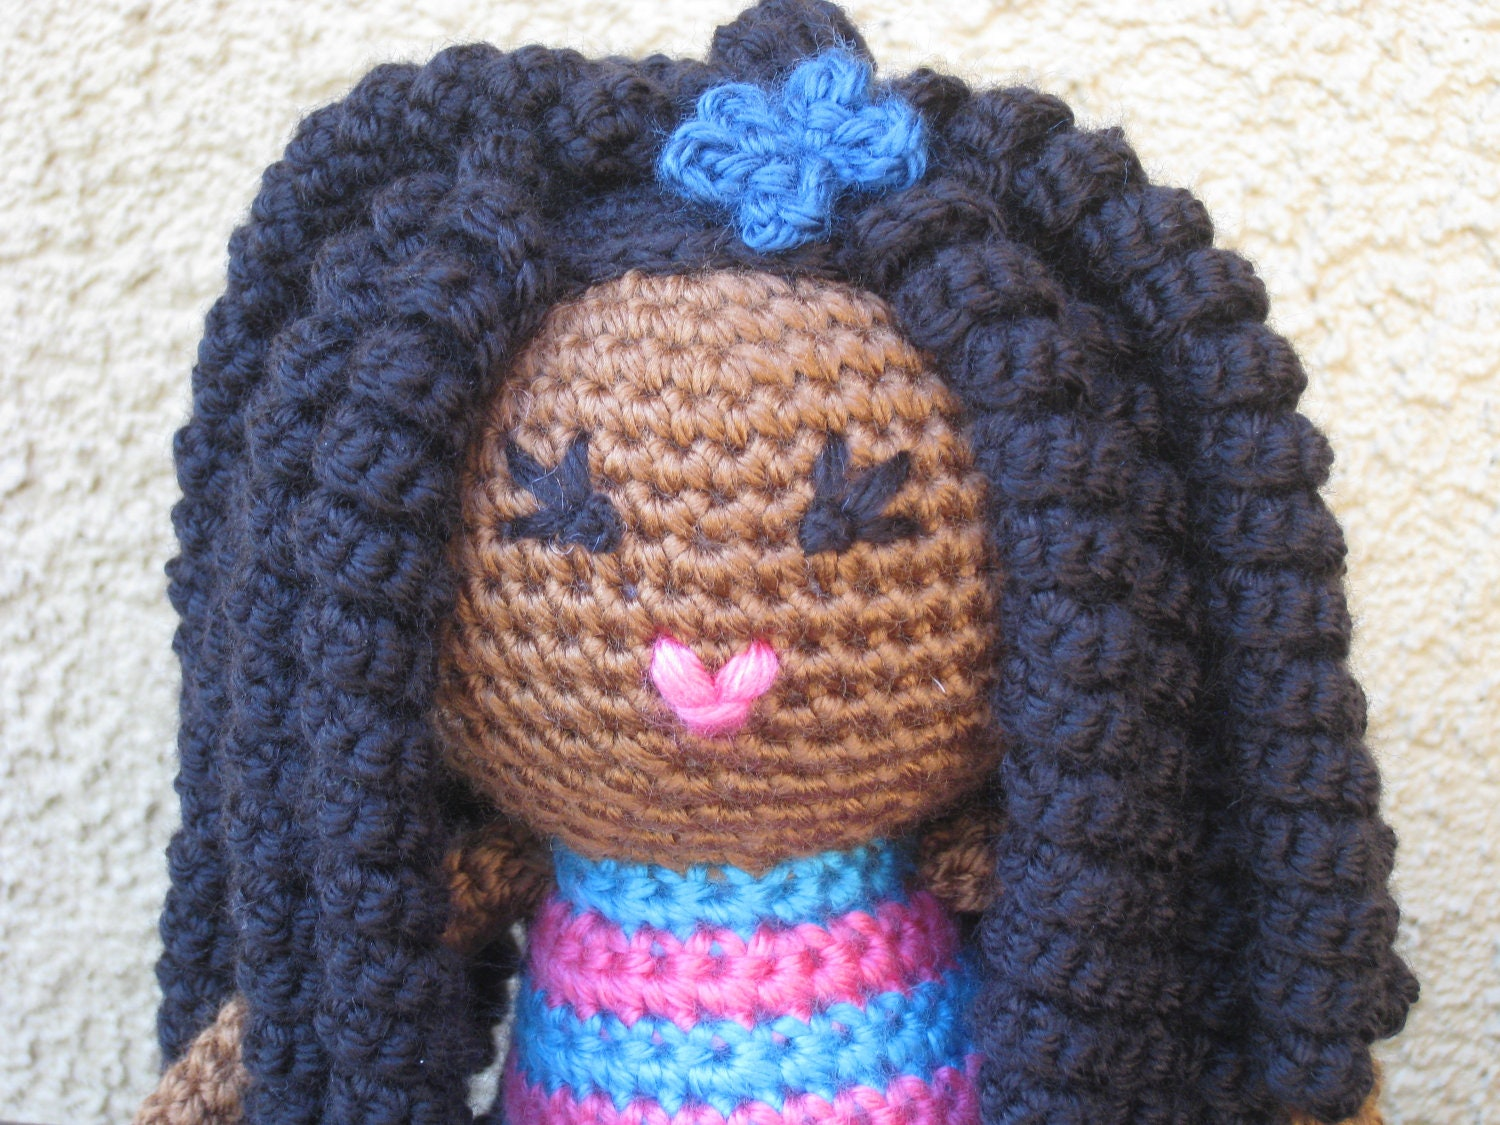 Crochet Hair On Dolls : CROCHET PATTERN African Curly Haired Doll Plush by LeenGreenBean